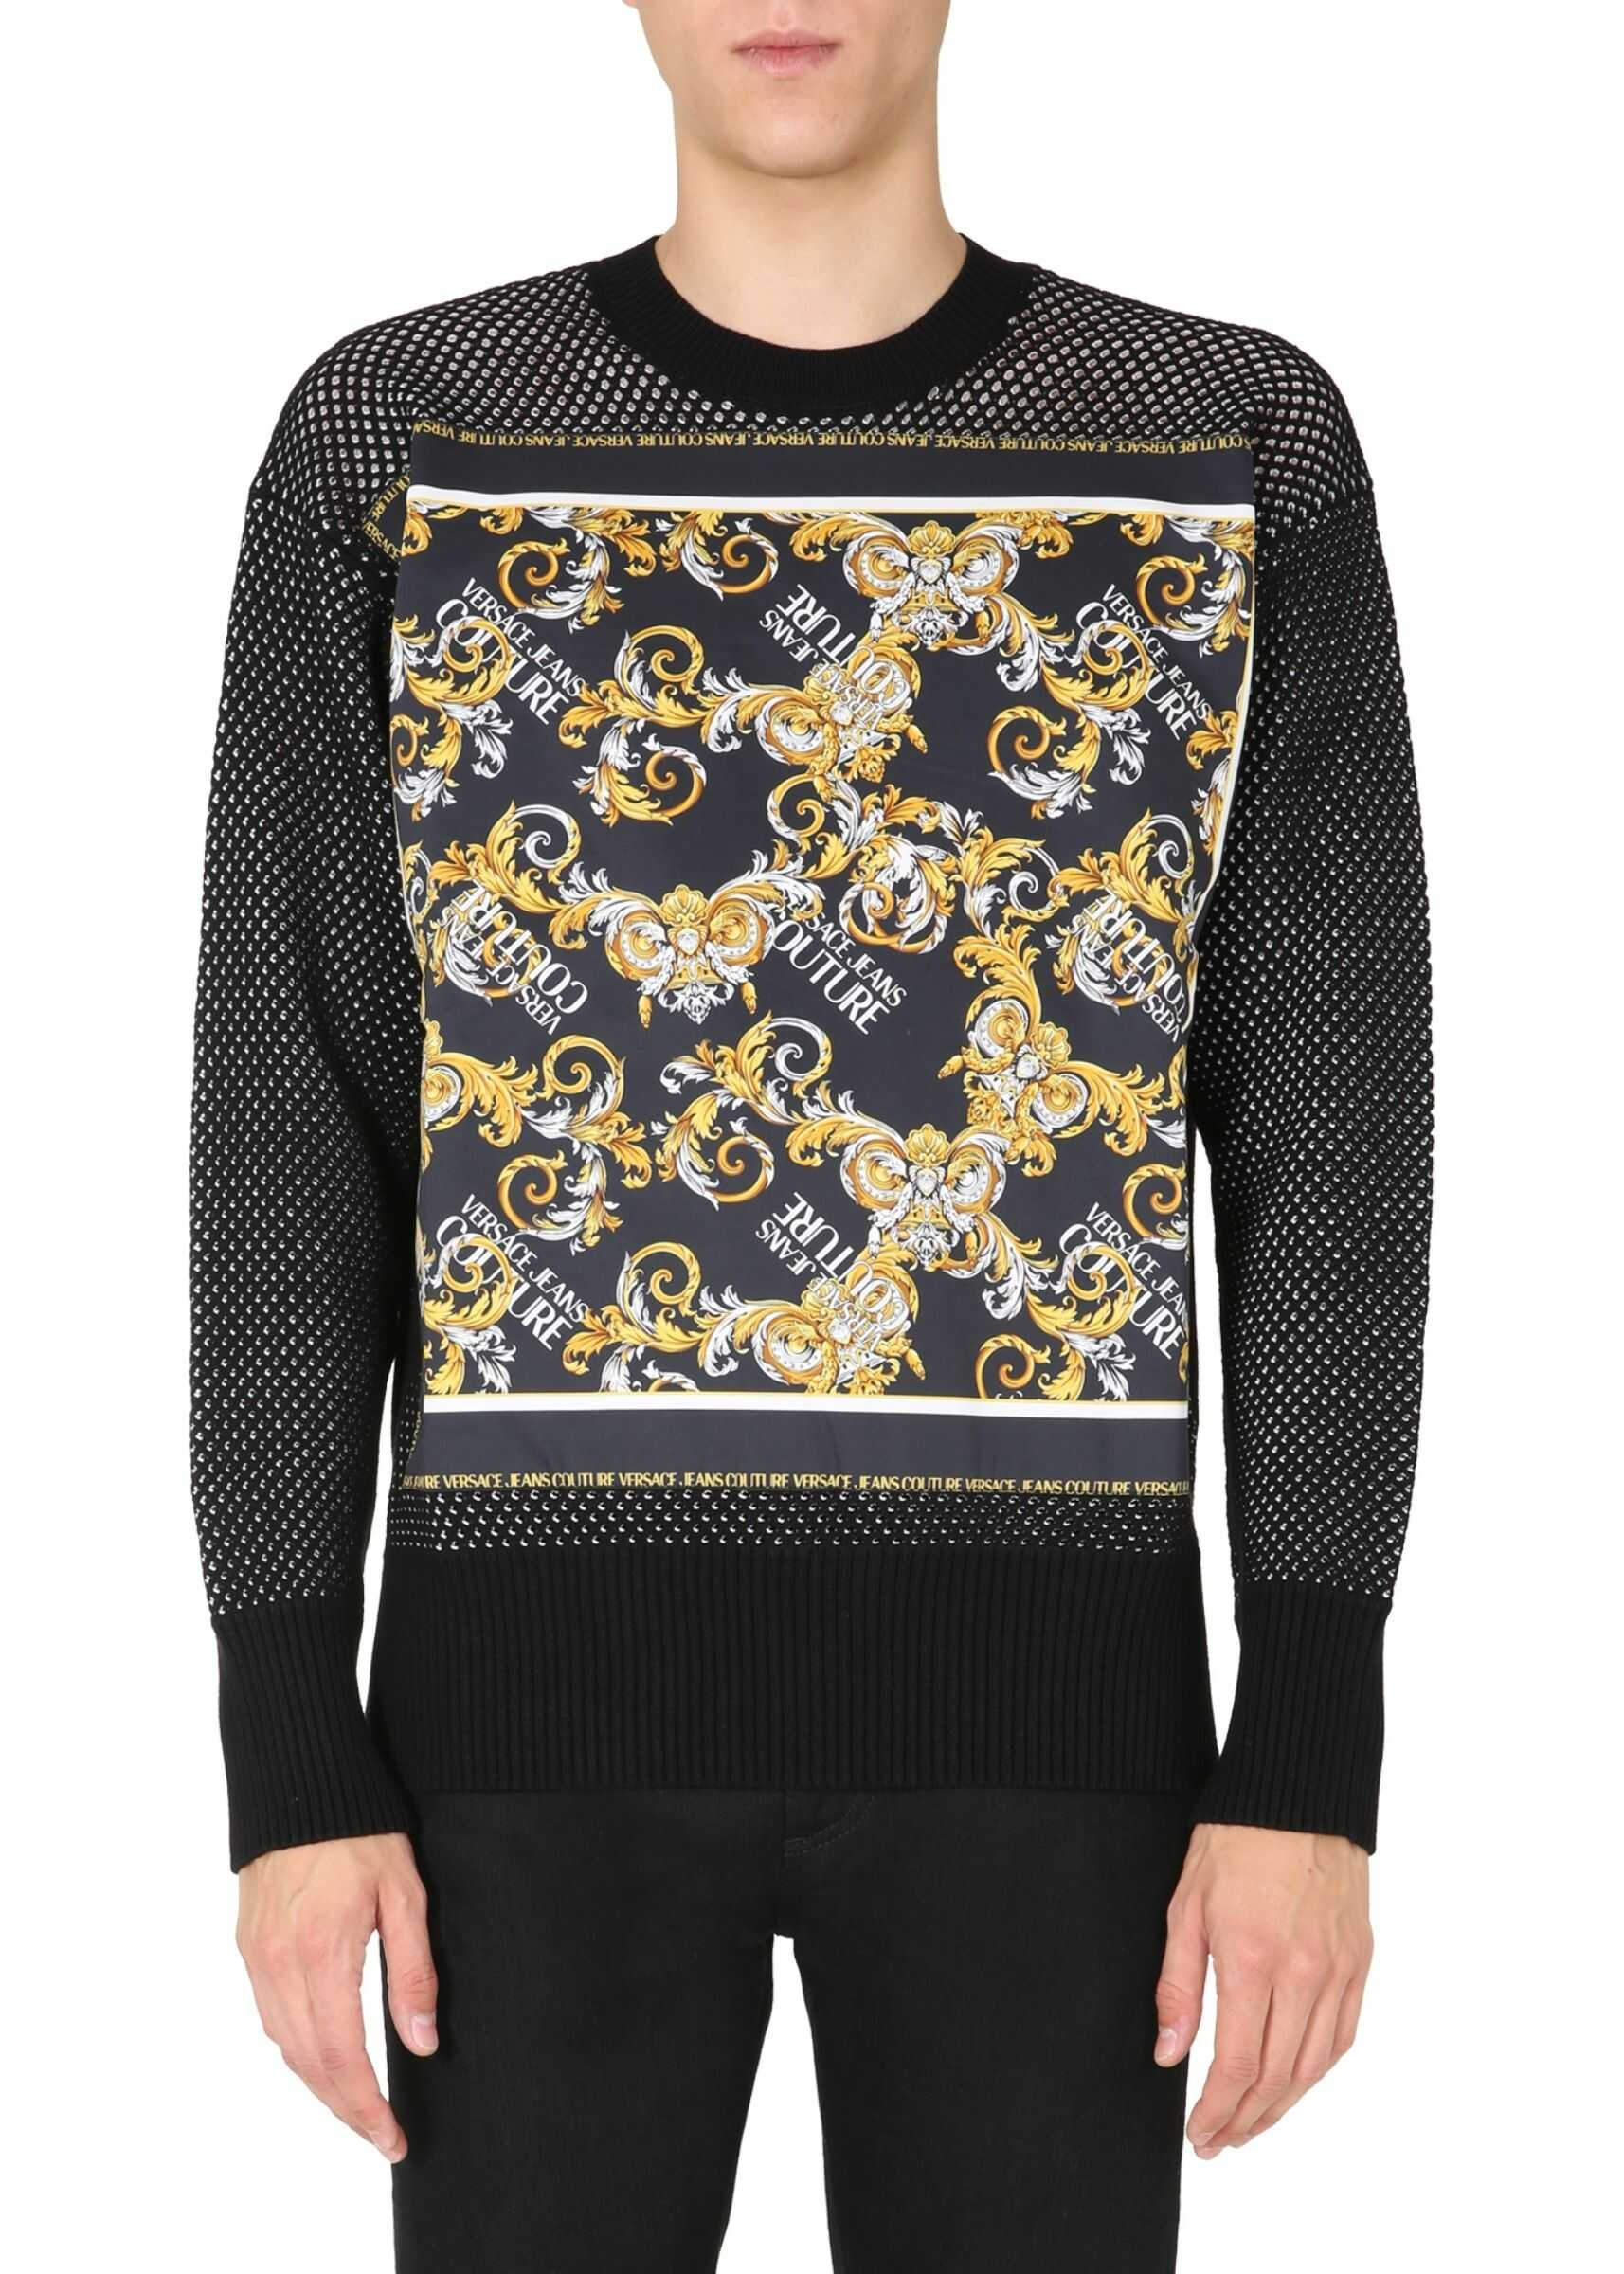 Versace Jeans Couture Crew Neck Sweater BLACK imagine